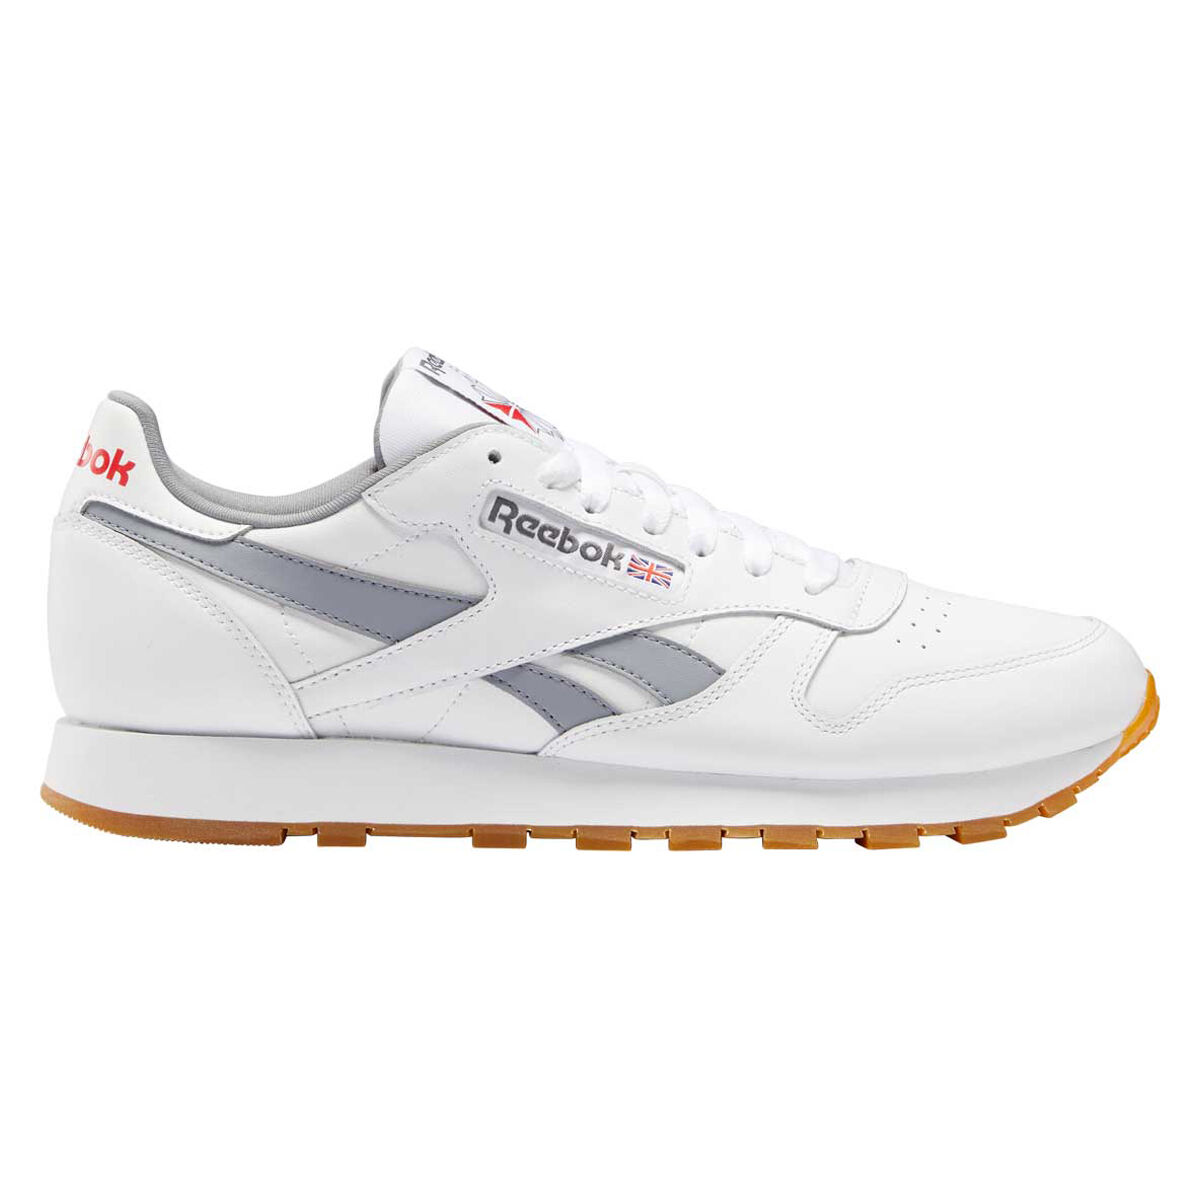 Reebok Classic Leather Casual Shoes